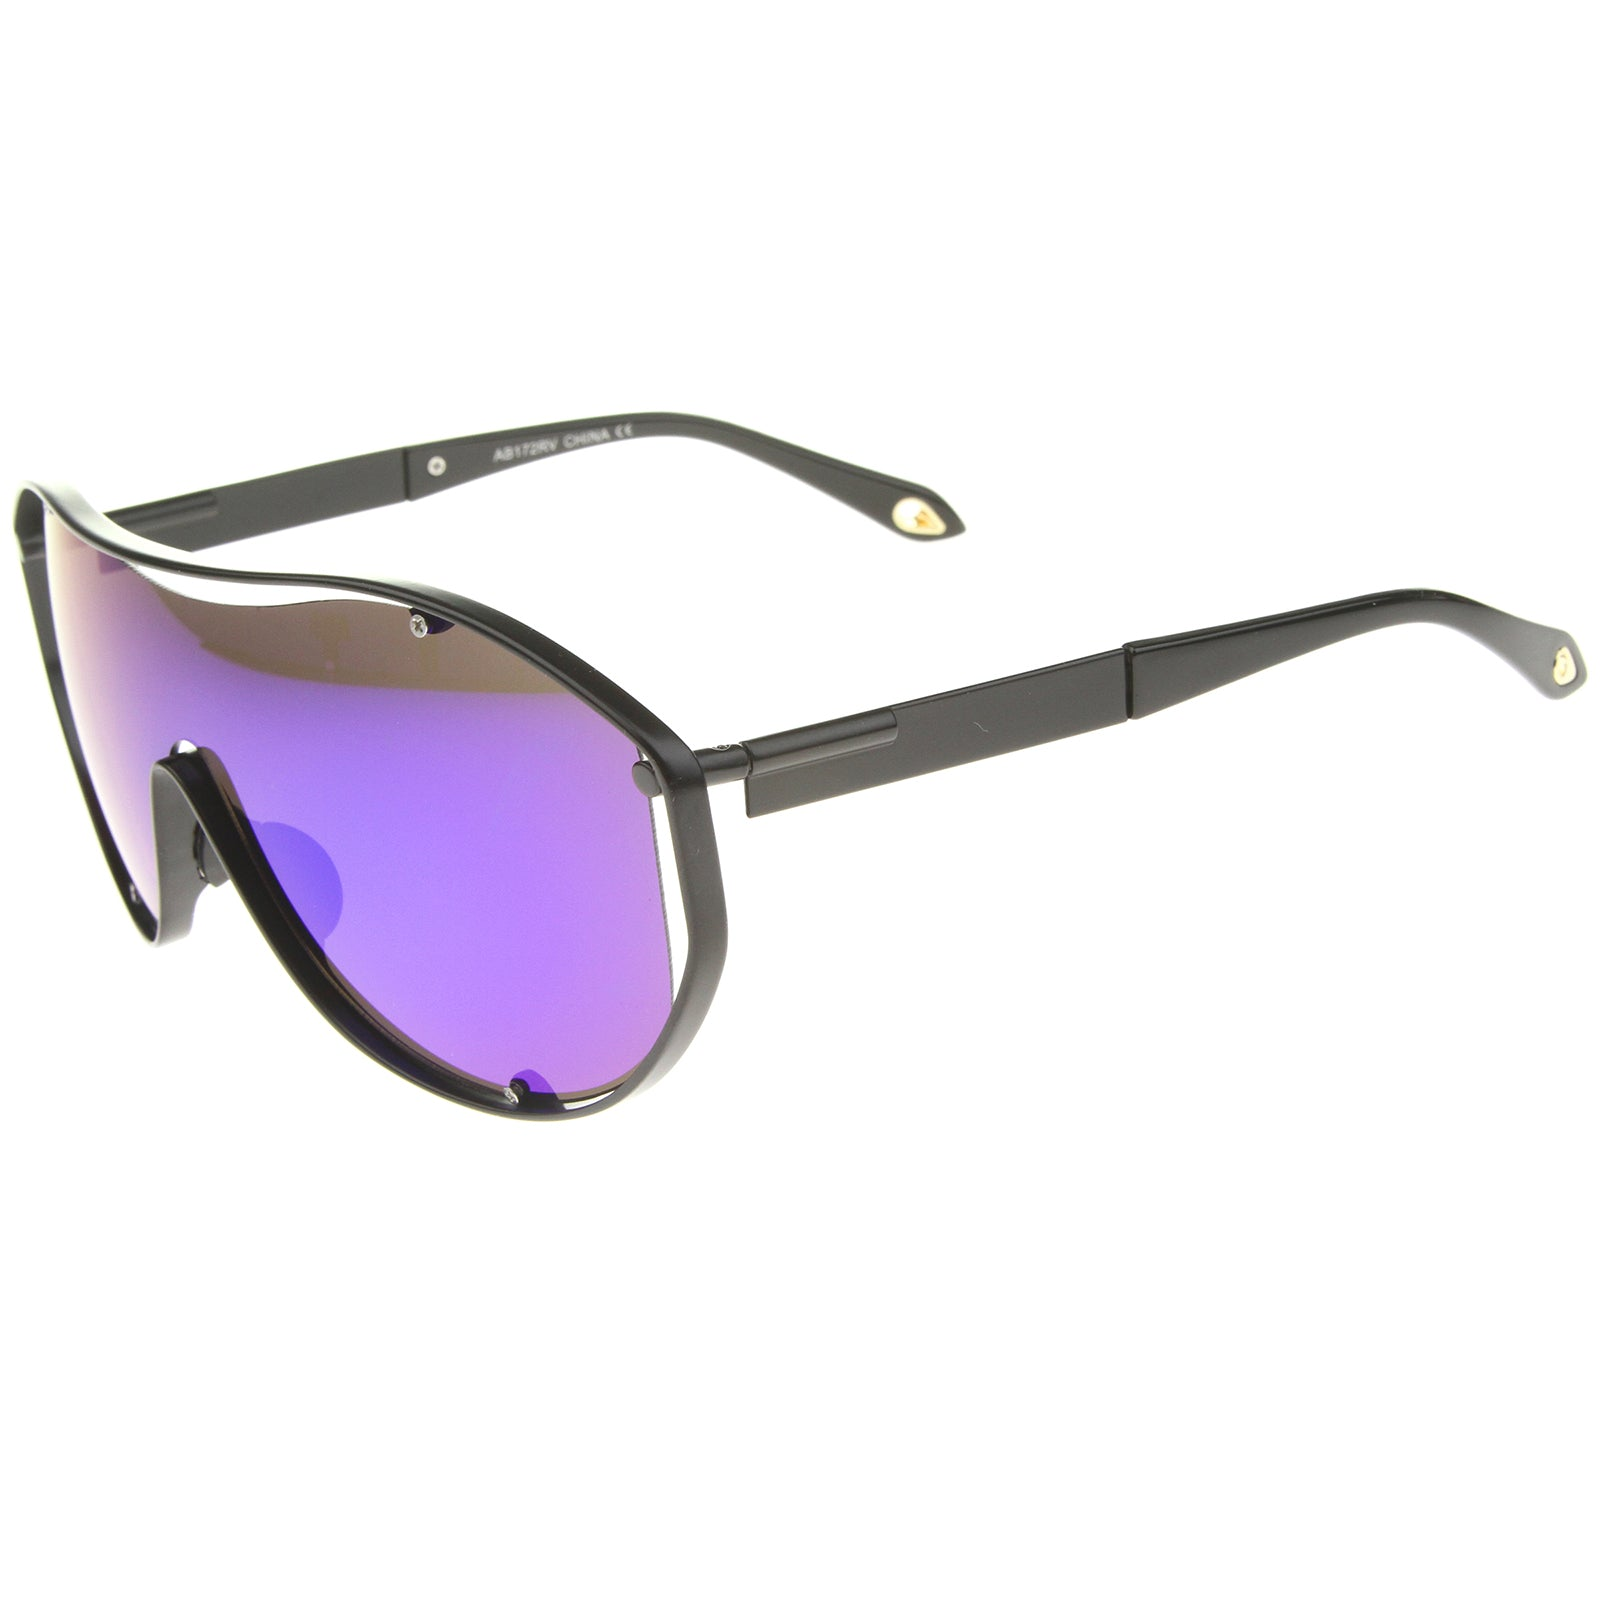 Modern Fashion Metal Frame Inner Rimless Mirror Lens Shield Sunglasses - sunglass.la - 3